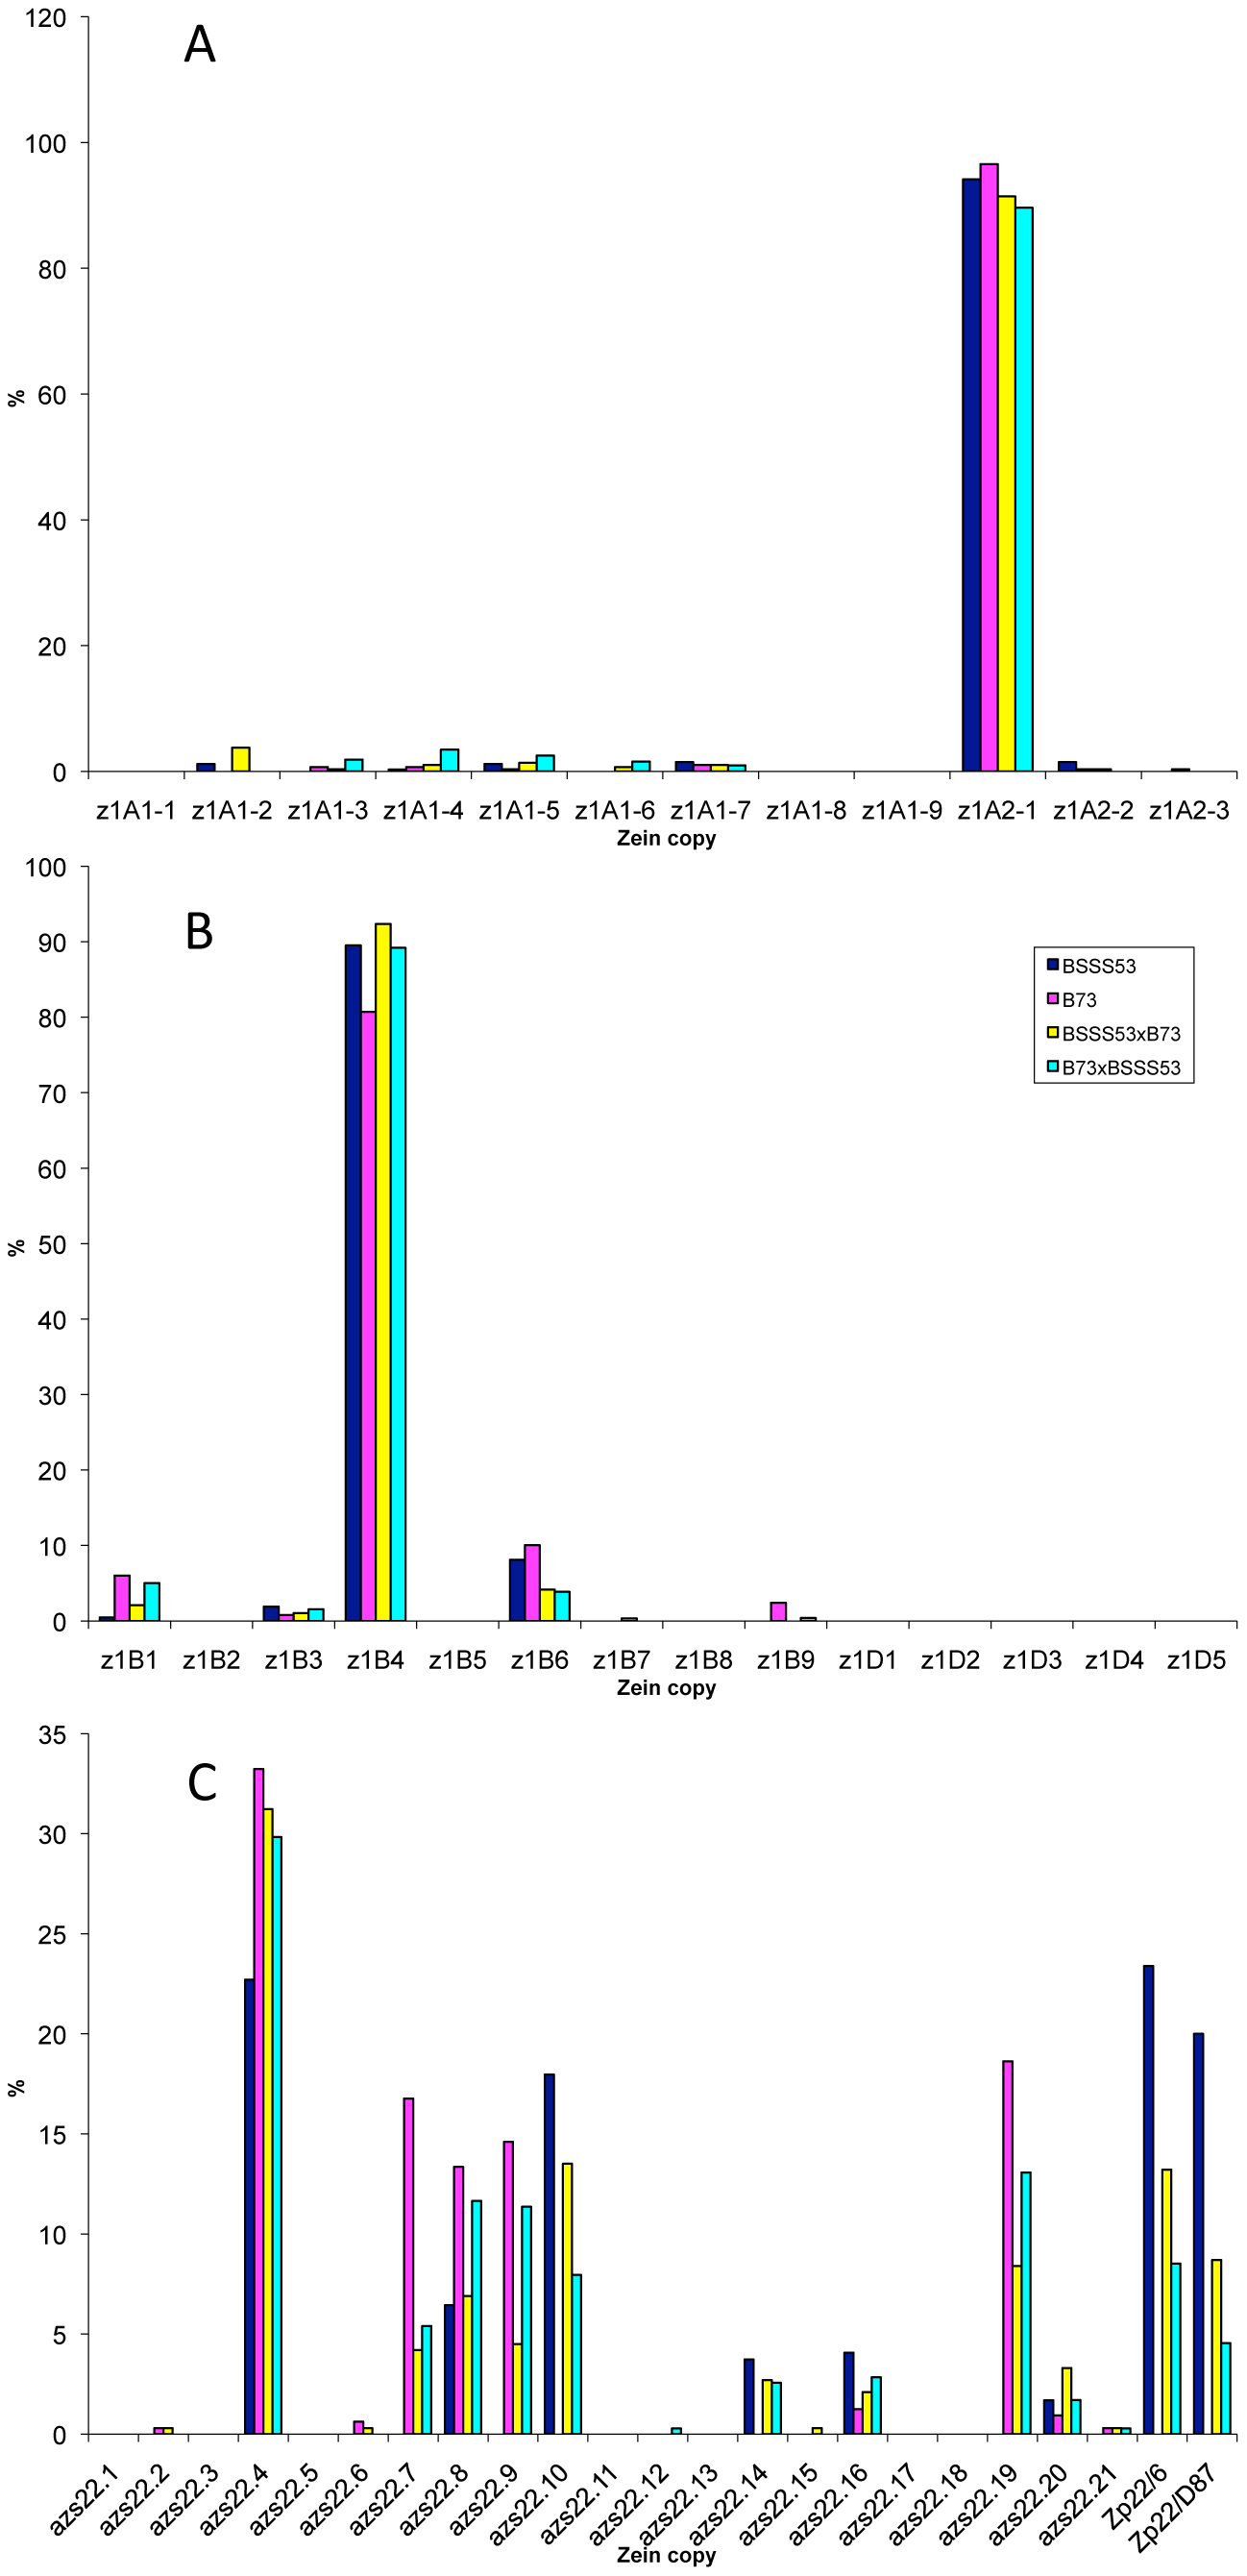 Transcript levels of the youngest zein gene copies prevail at each of the loci analyzed in B73, BSSS53, and their reciprocal crosses.